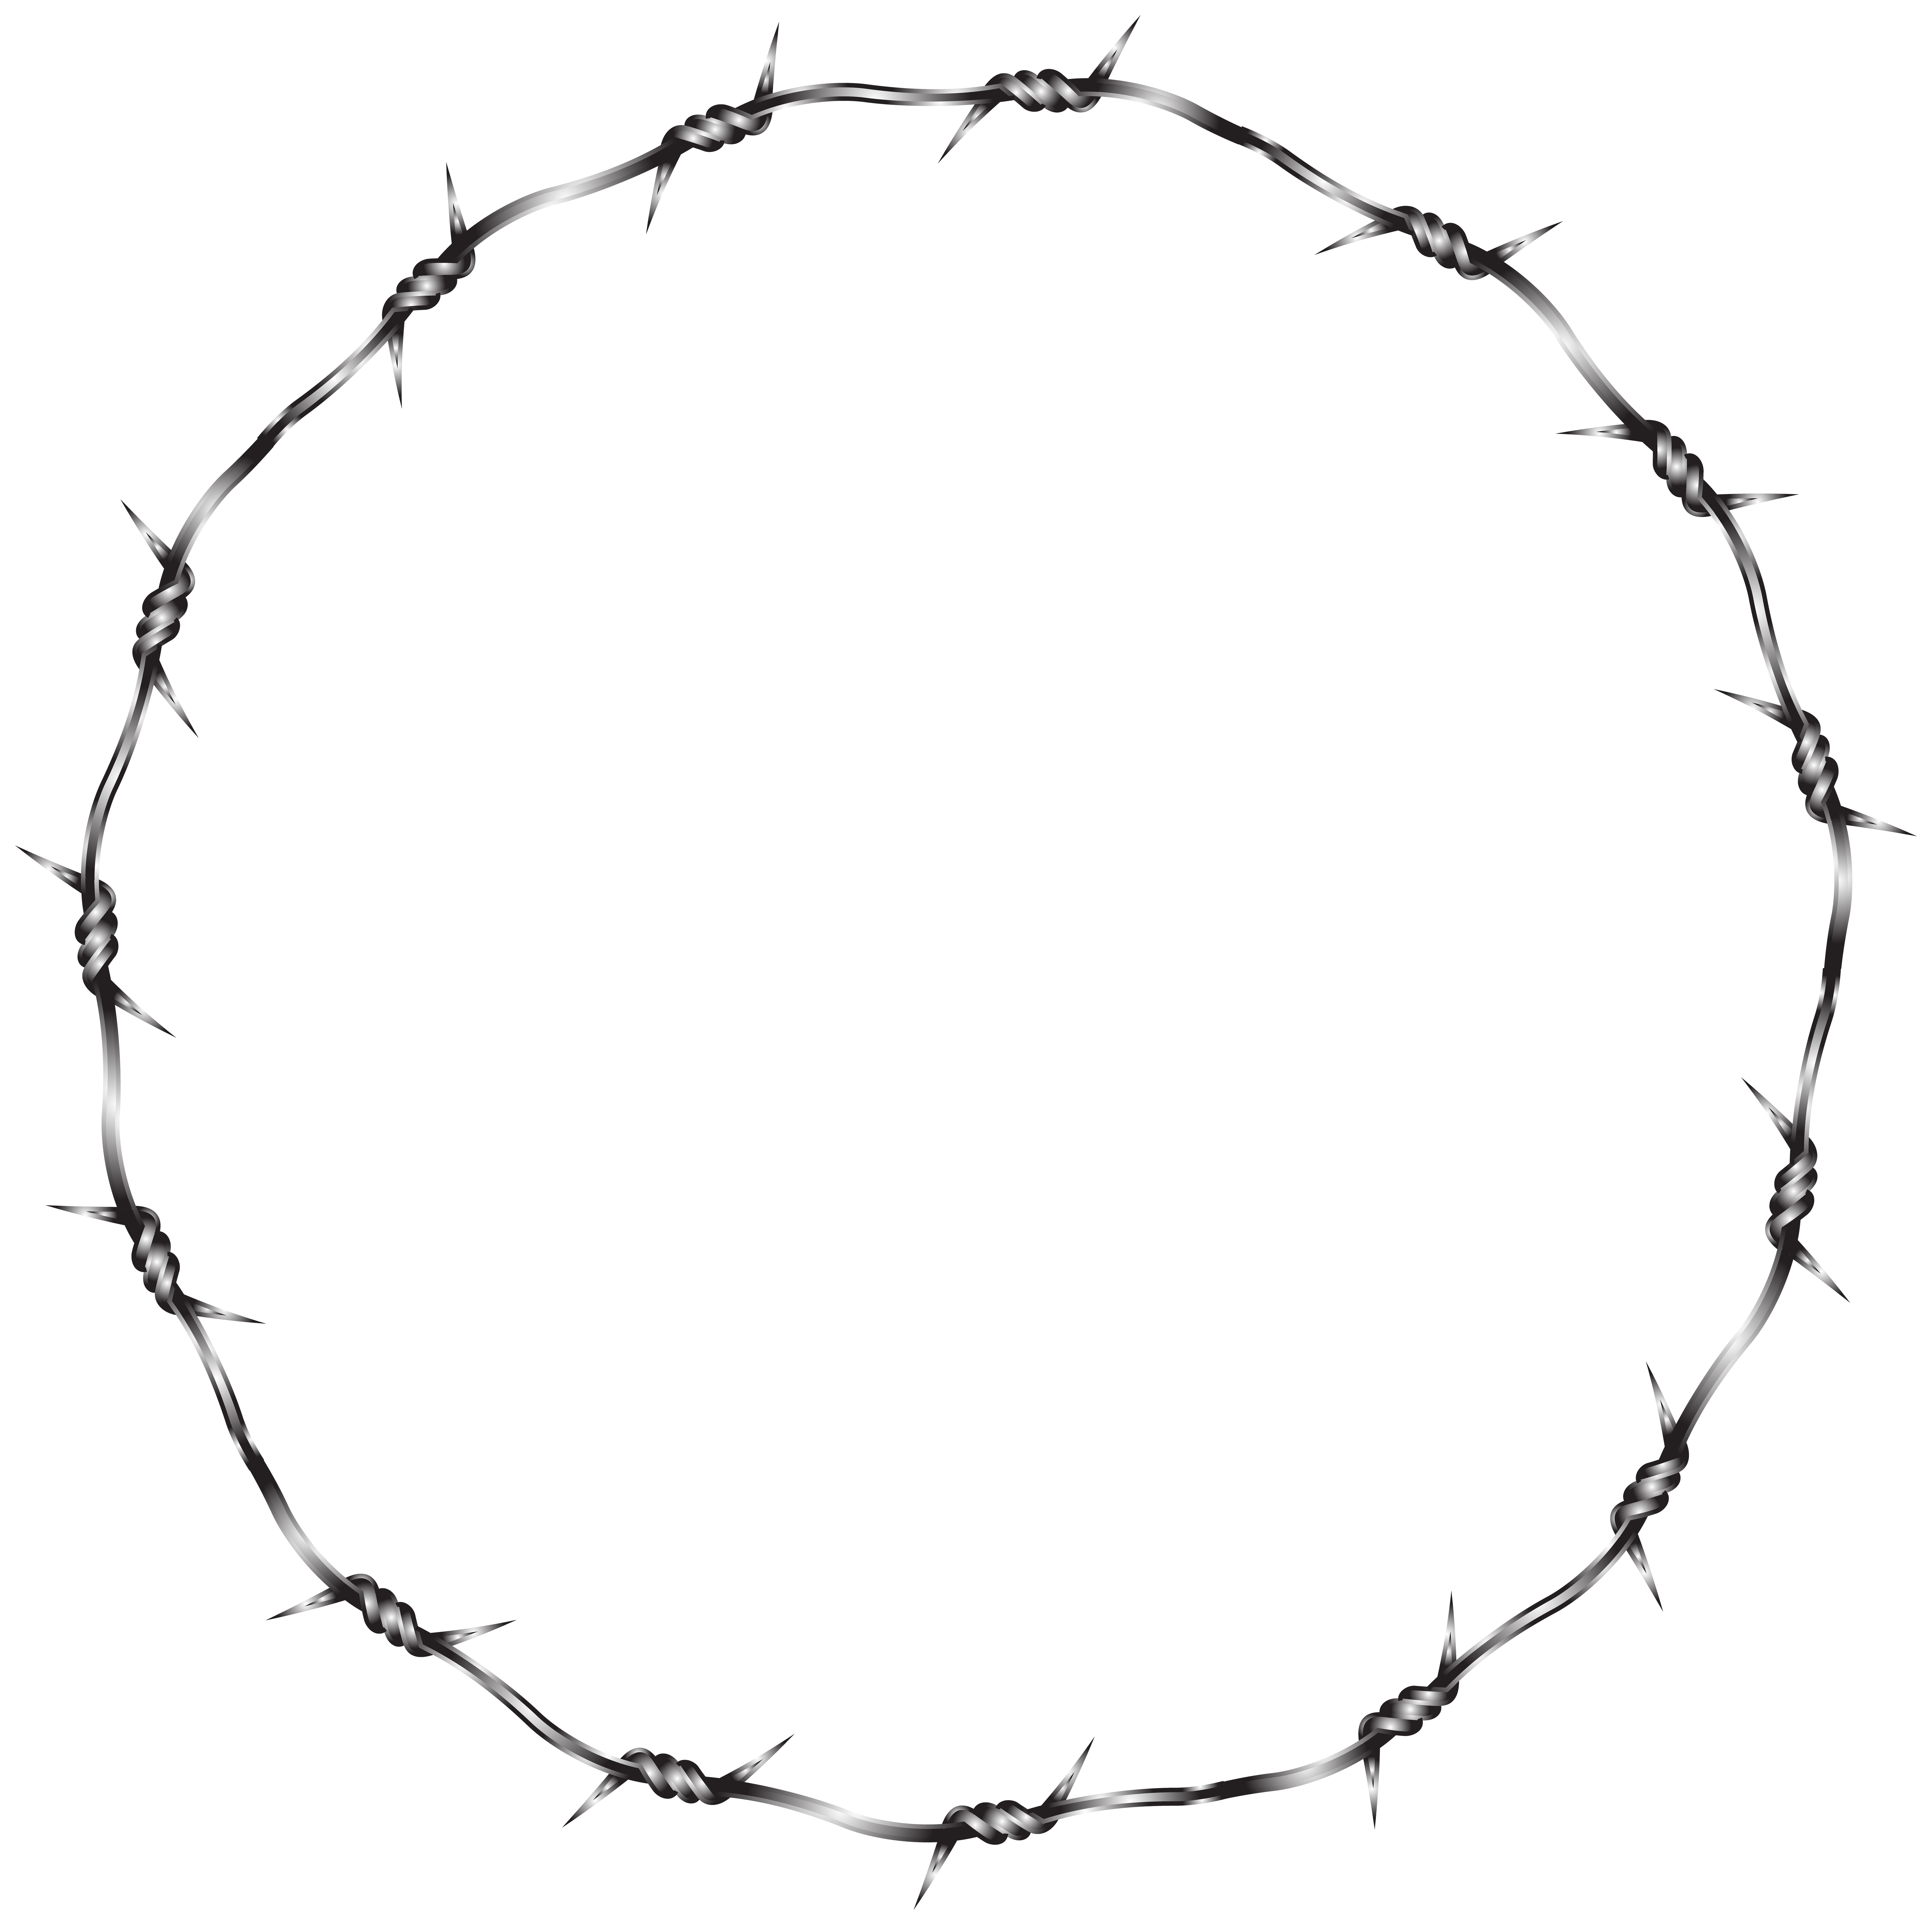 Barb Wire clipart circle #10